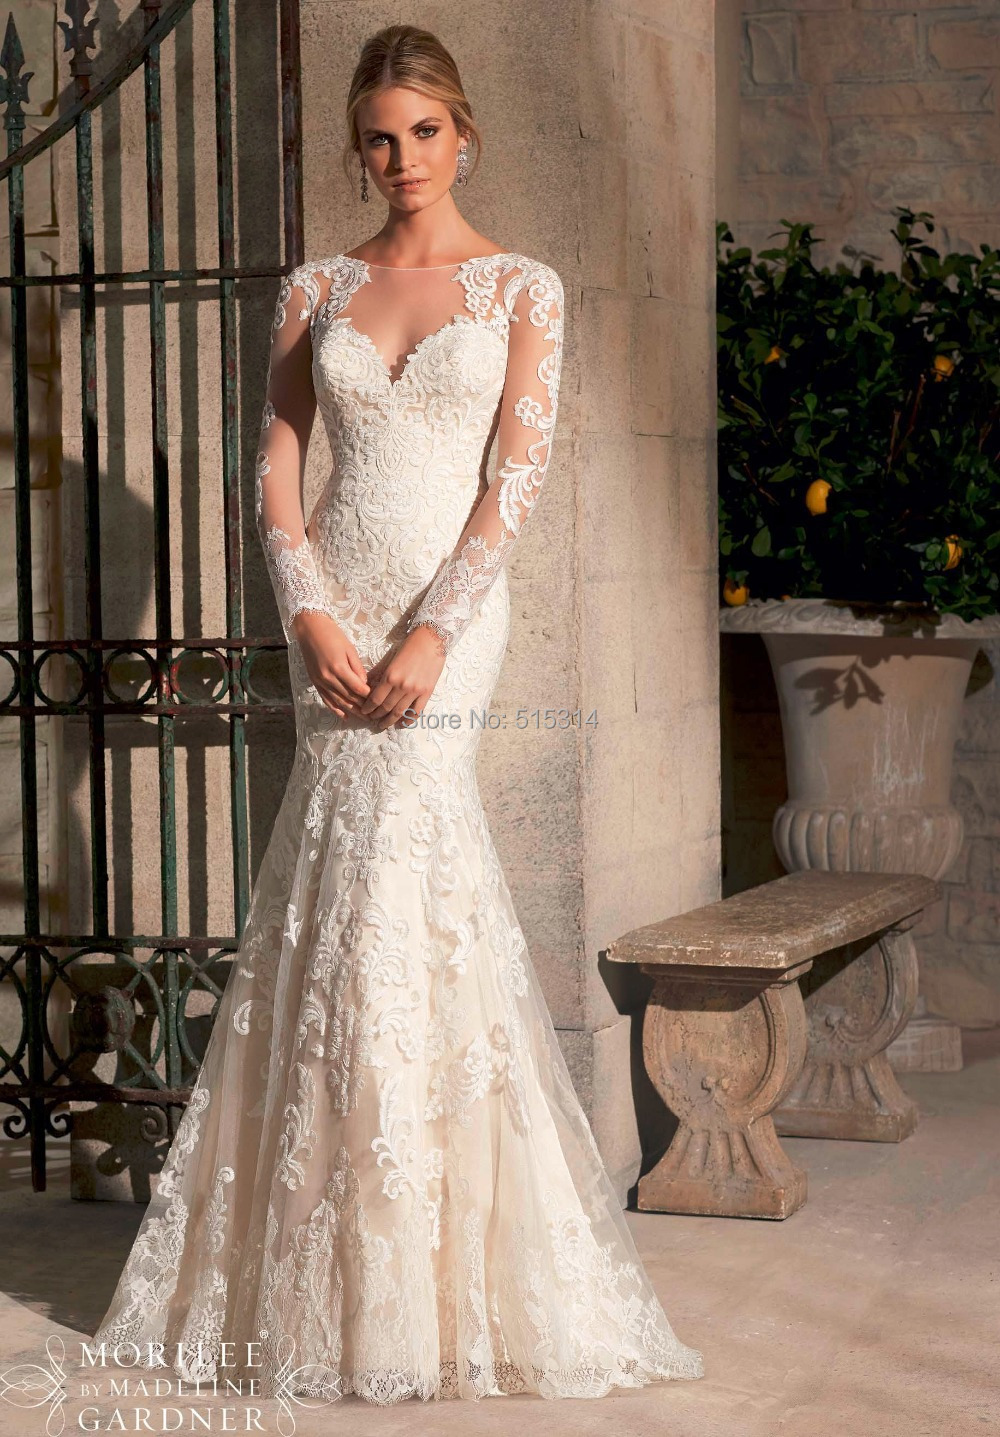 attractive wedding dresses look best bride sexy mermaid wedding dresses sexy mermaid wedding dresses minimalist design